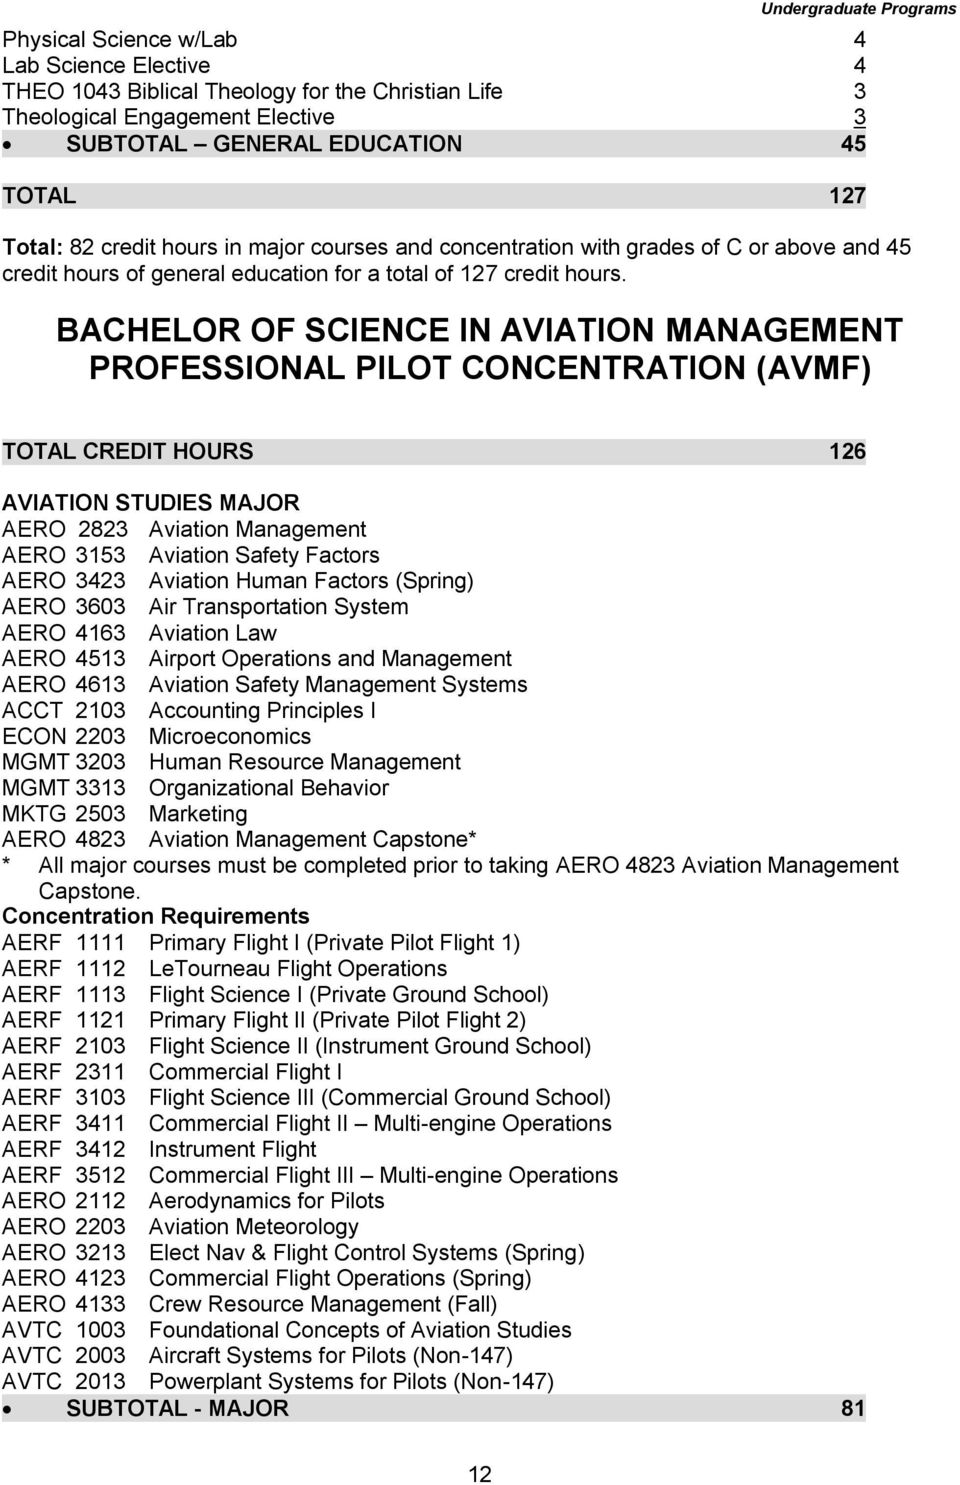 BACHELOR OF SCIENCE IN AVIATION MANAGEMENT PROFESSIONAL PILOT CONCENTRATION (AVMF) TOTAL CREDIT HOURS 126 AVIATION STUDIES MAJOR AERO 2823 Aviation Management AERO 3153 Aviation Safety Factors AERO